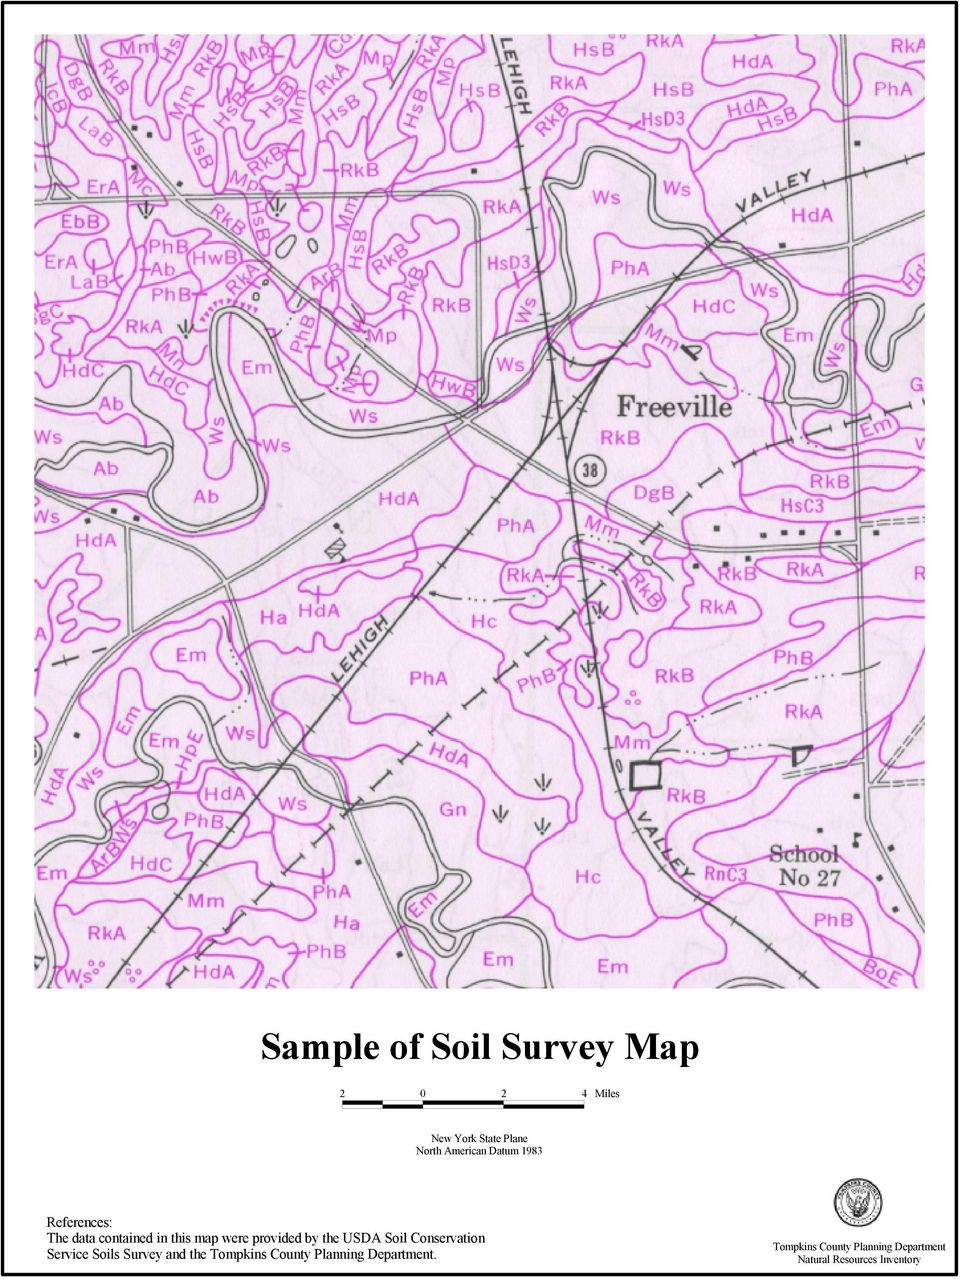 USDA Soil Conservation Service Soils Survey and the Tompkins County